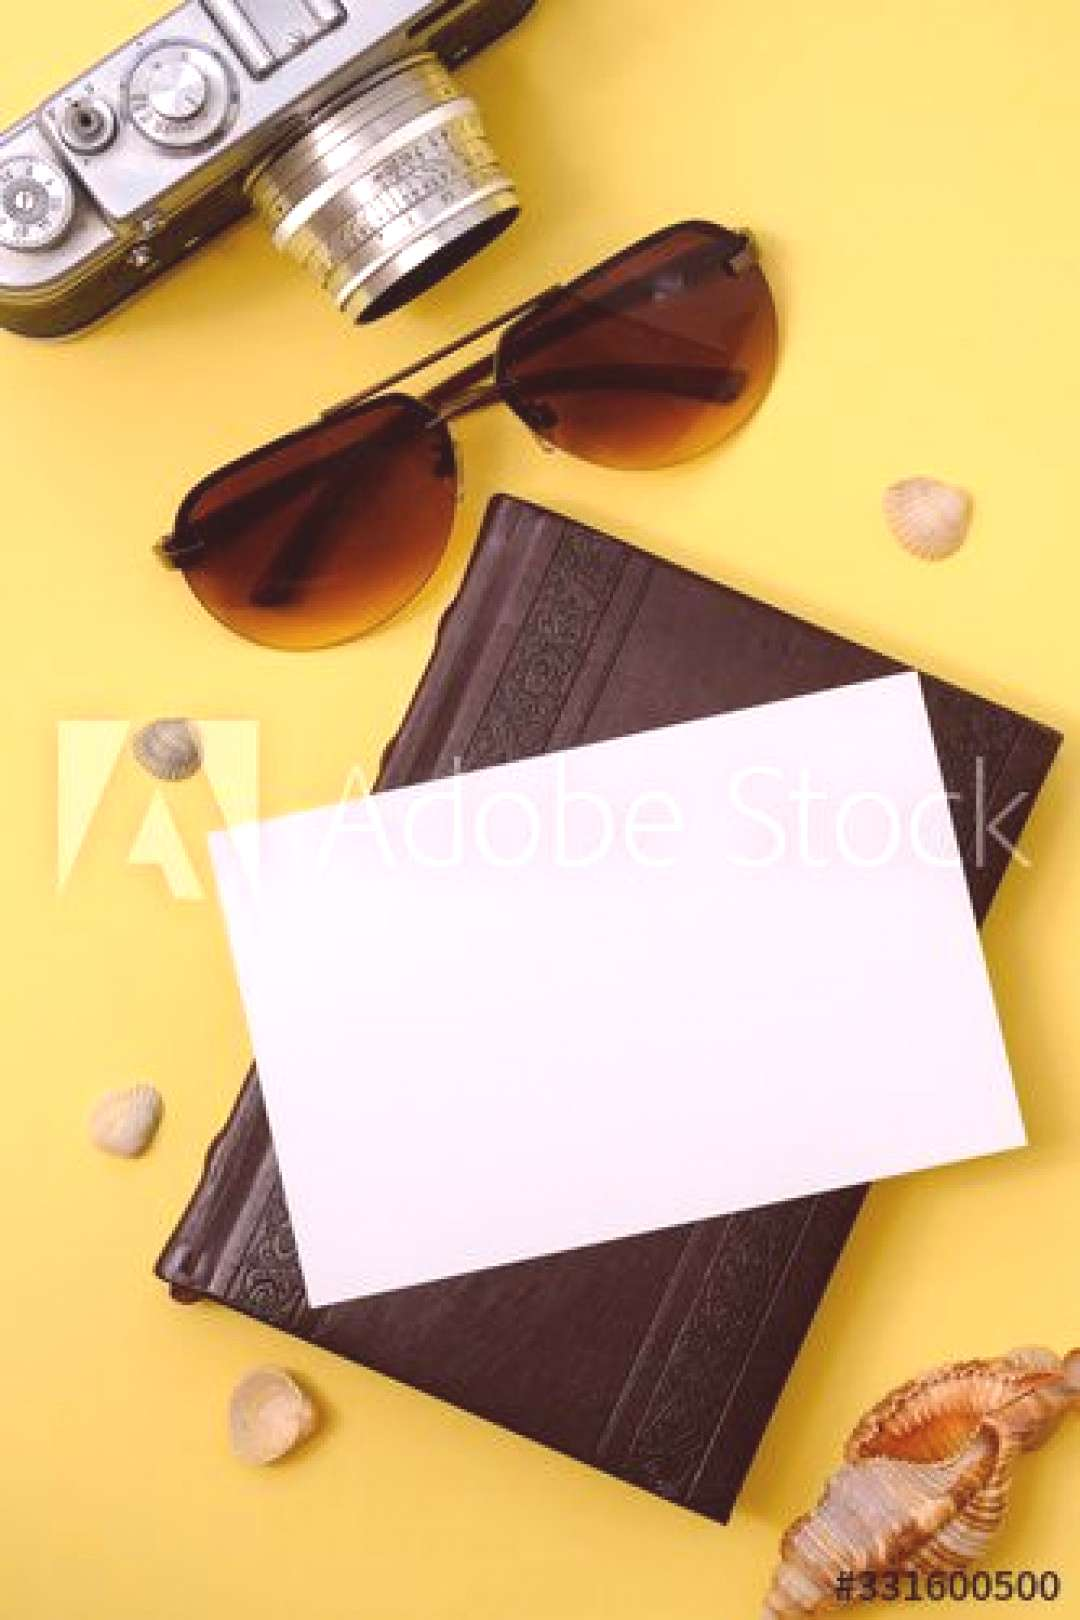 retro camera and photo card on a yellow background with shells ,